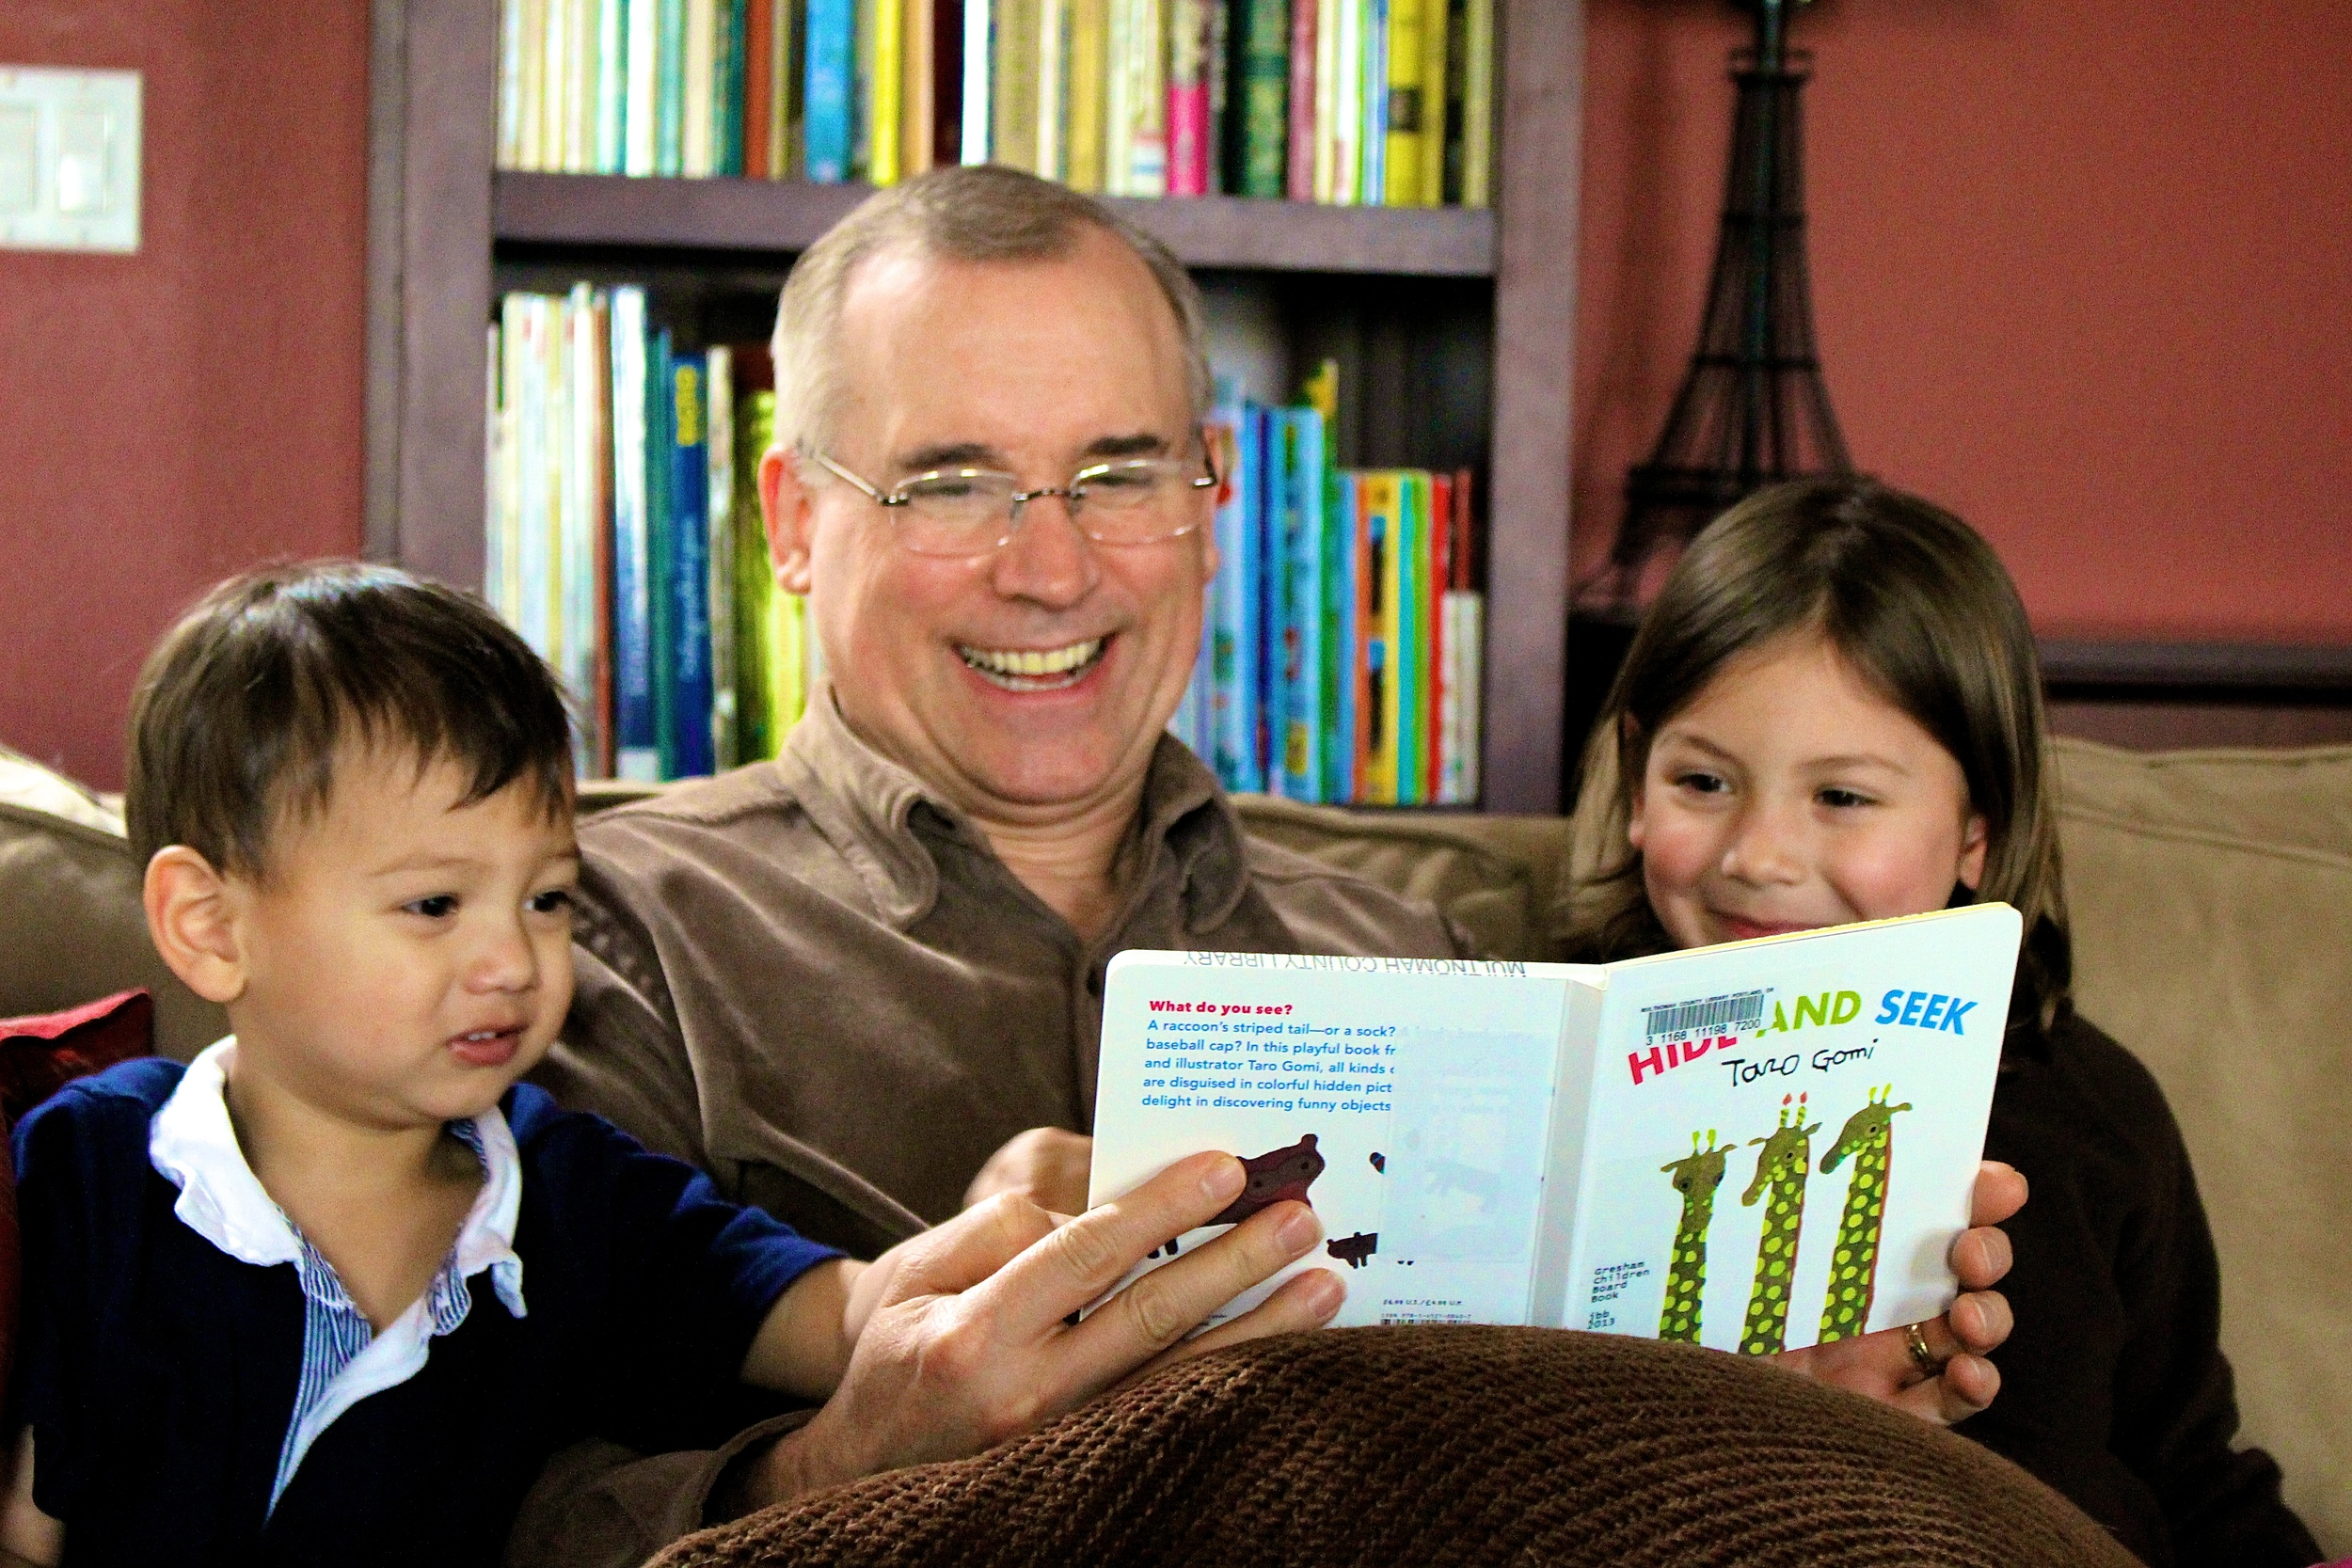 My children reading with their Grandpa